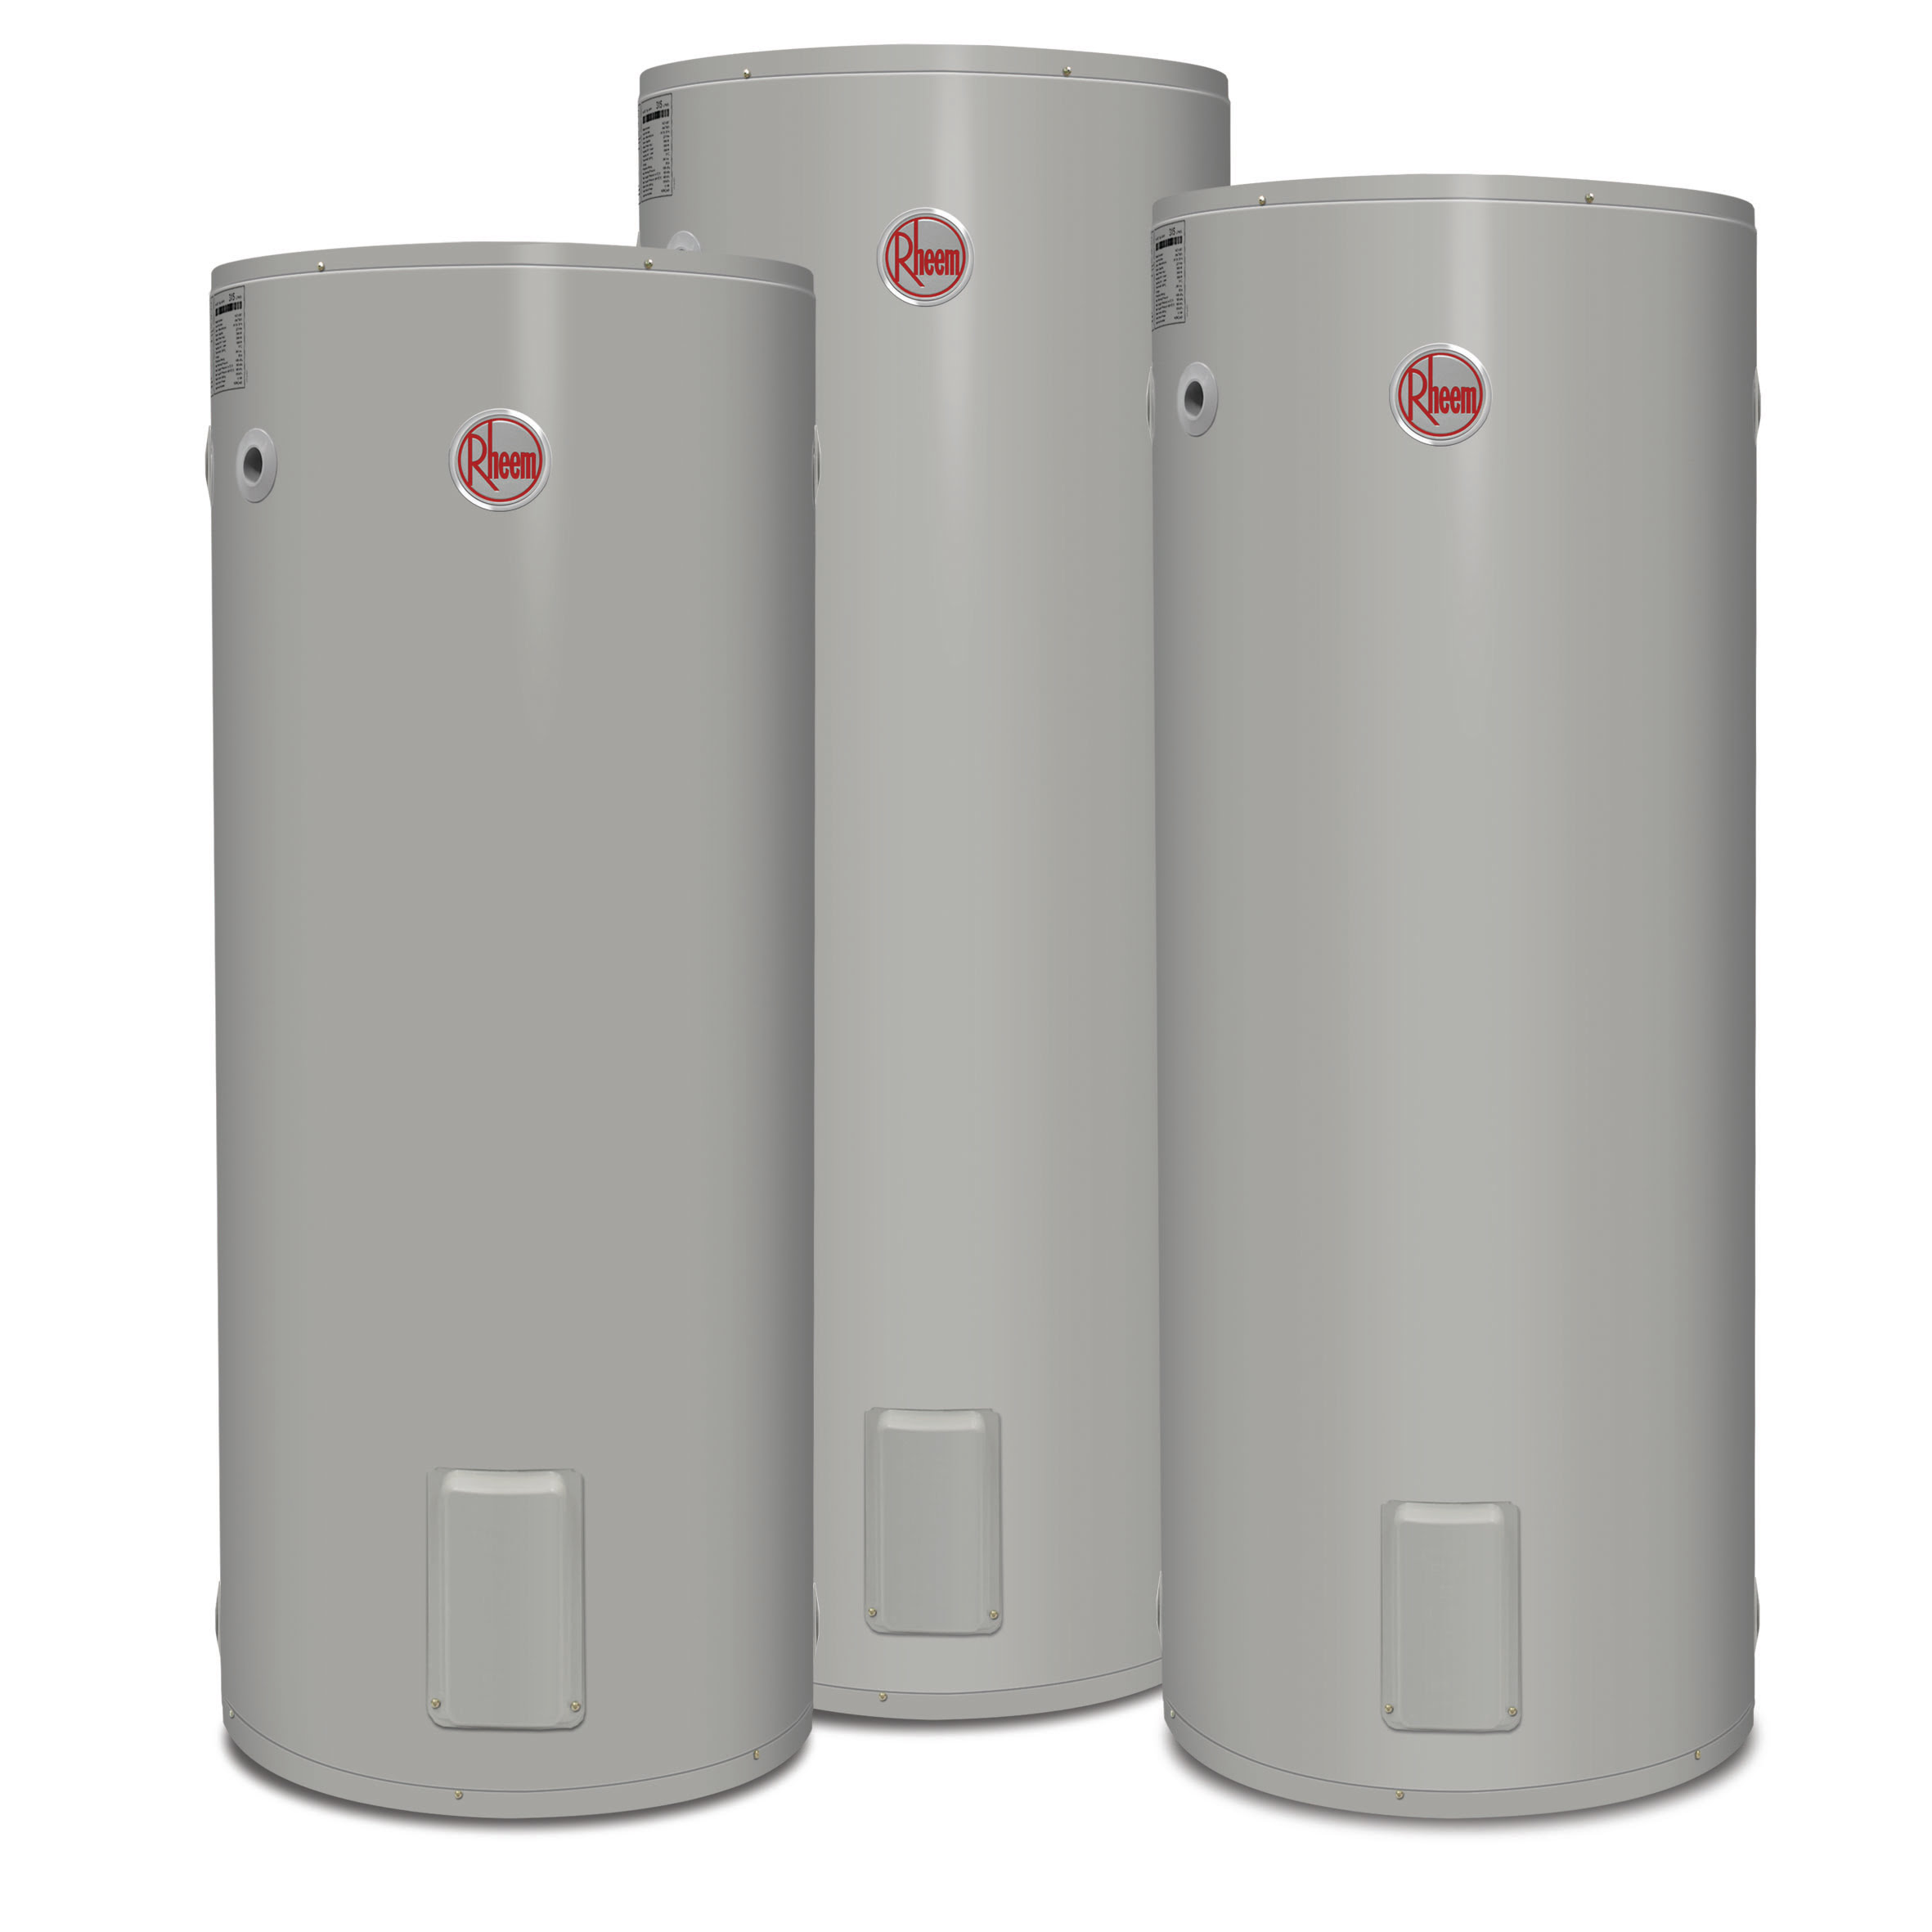 rheem electric water heaters authorised agents. Black Bedroom Furniture Sets. Home Design Ideas